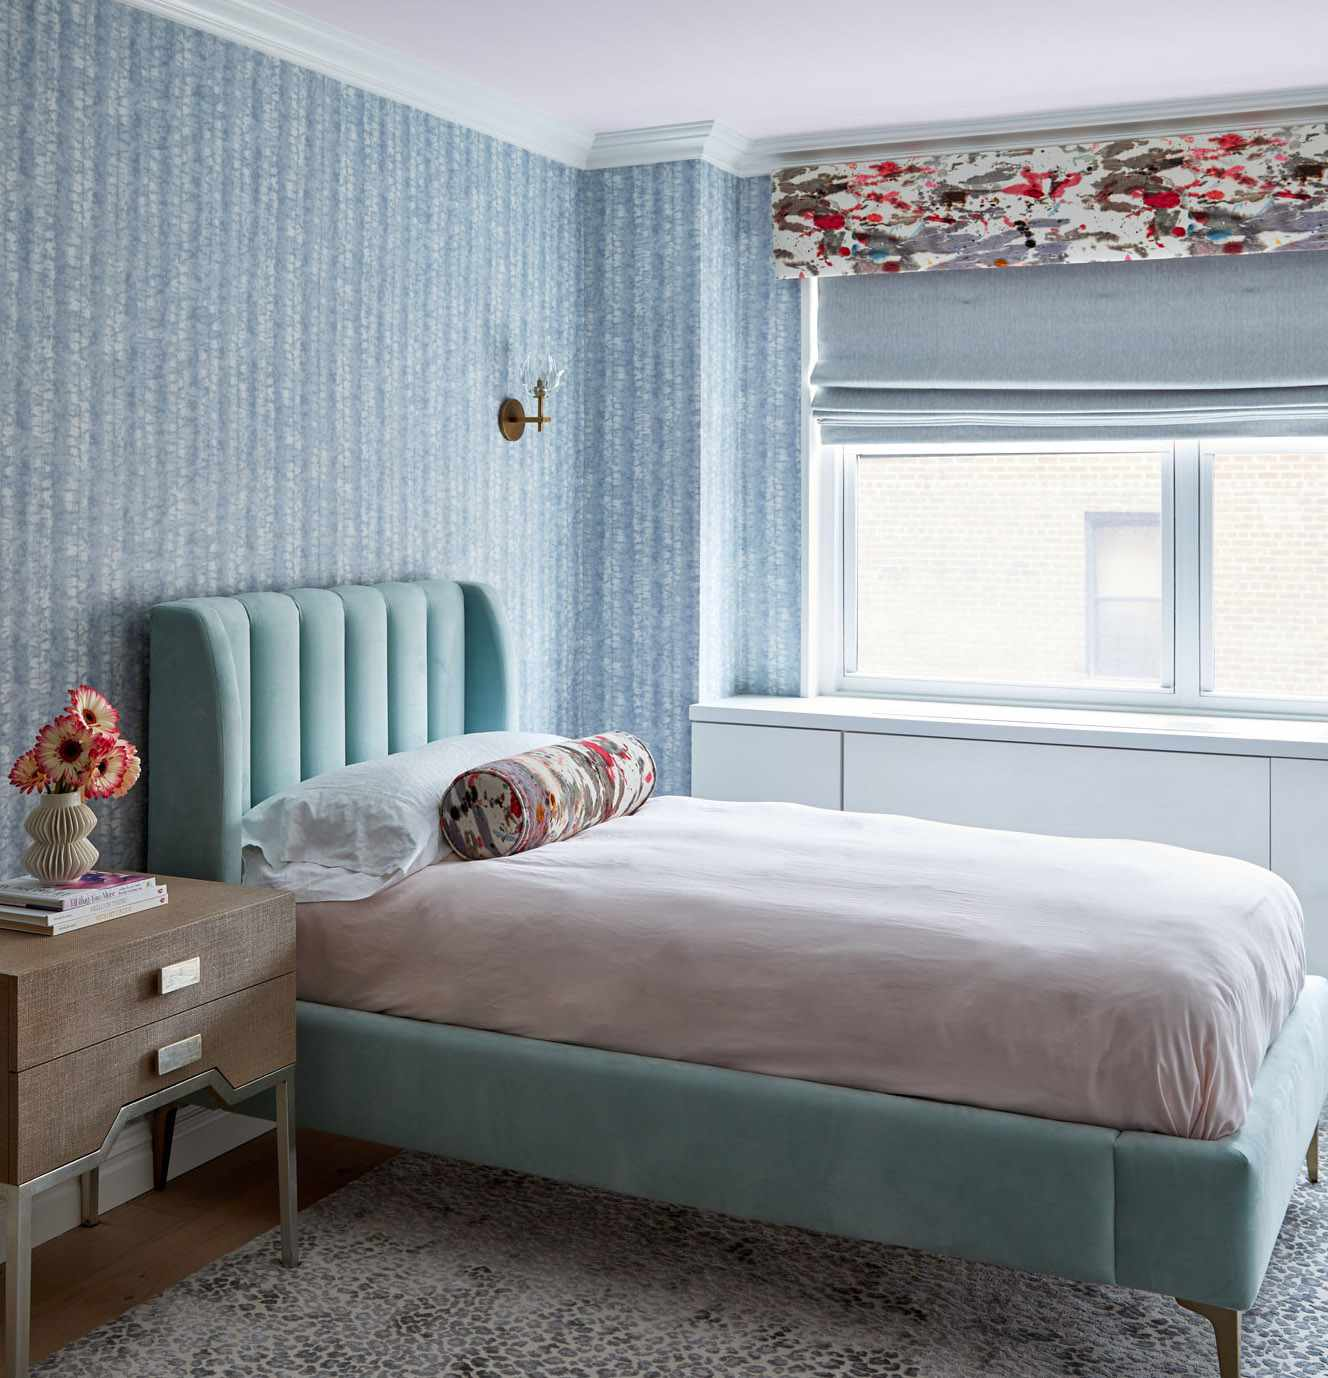 small bedroom with subtle blue pattern wallpaper and solid color bedding